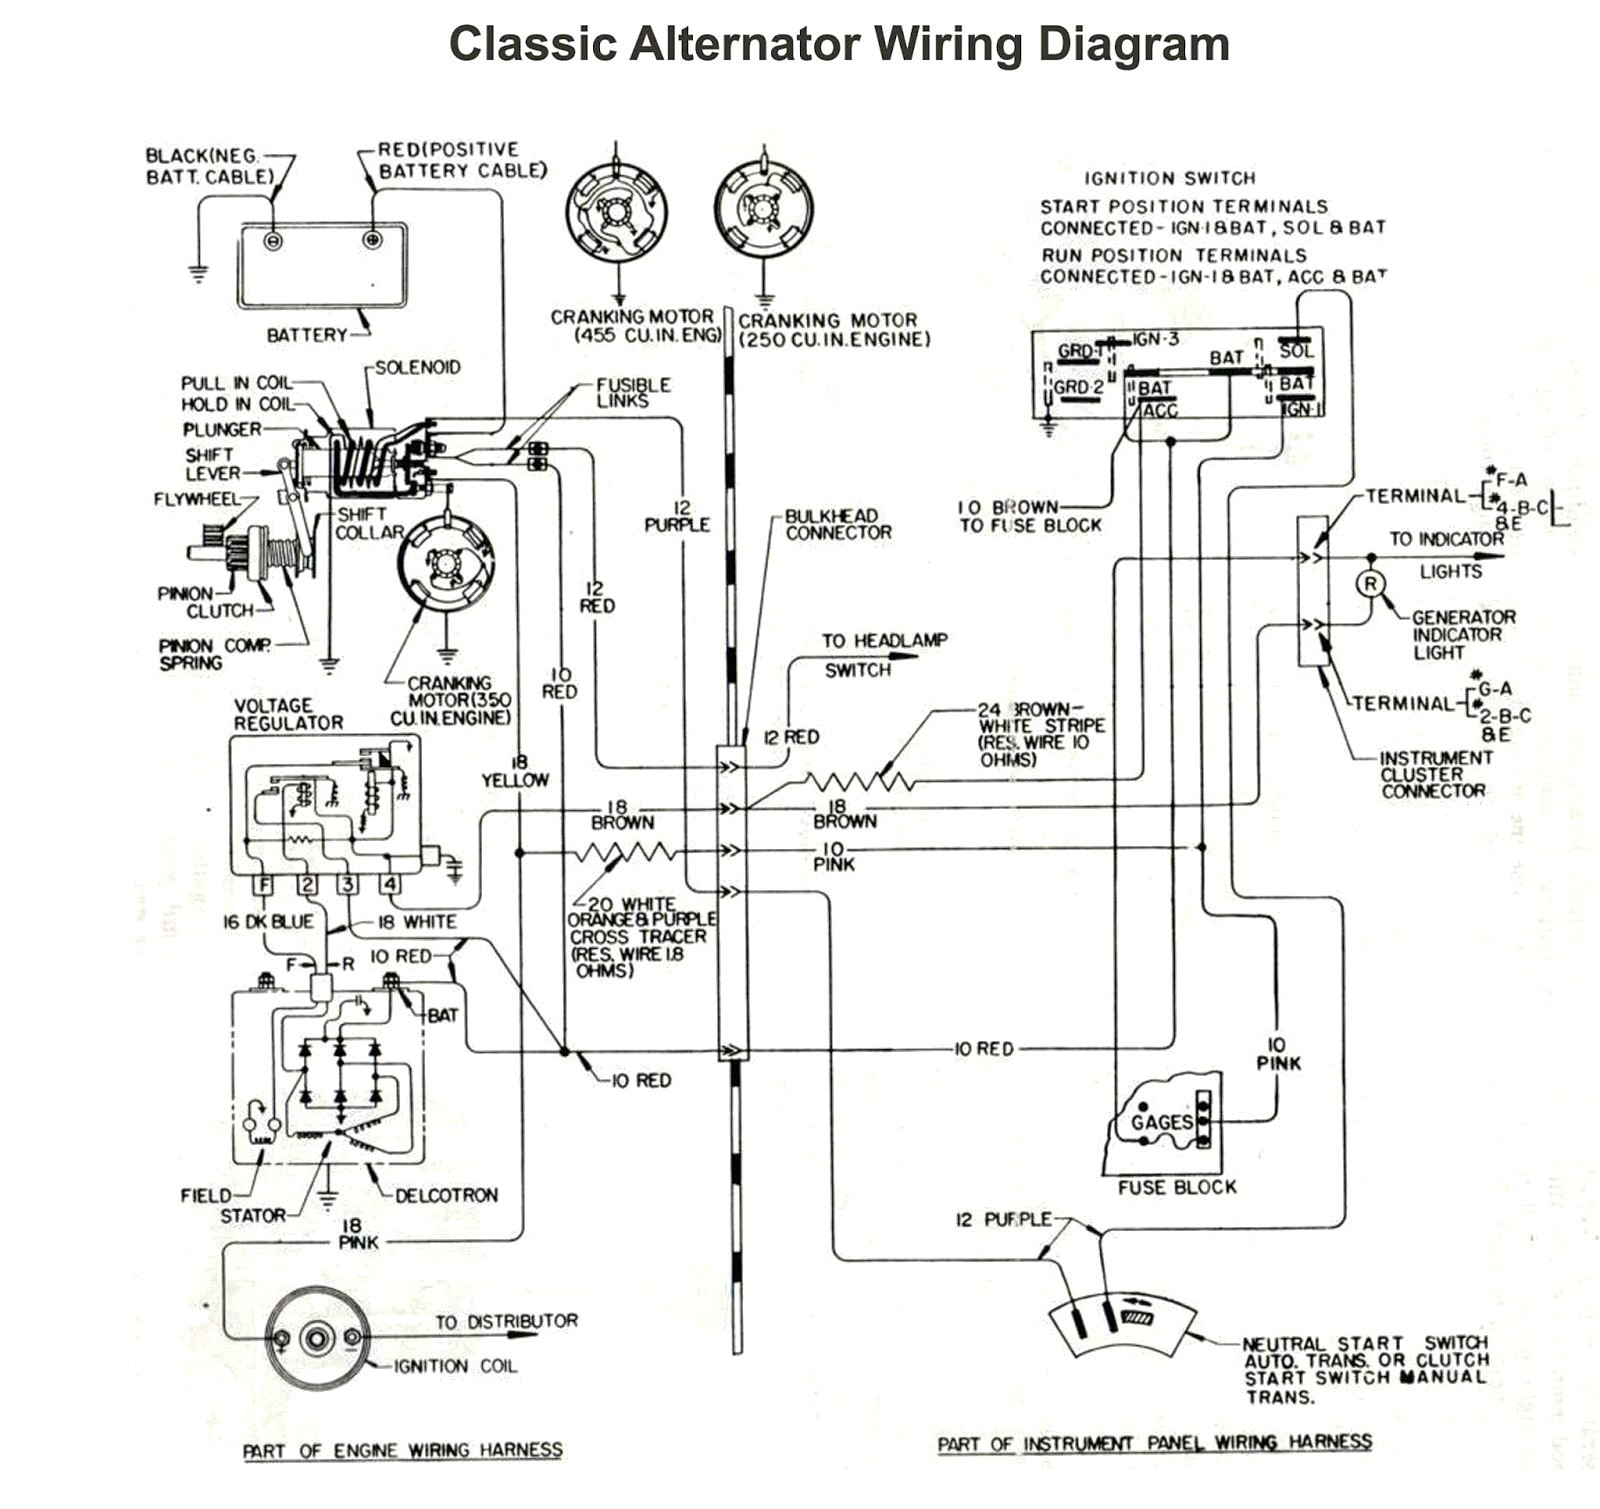 hight resolution of cushman truckster 36 volt wiring diagram electrical wiring diagrams 36 volt club car wiring diagram cushman golf cart 36 volt wiring diagram 1974 to